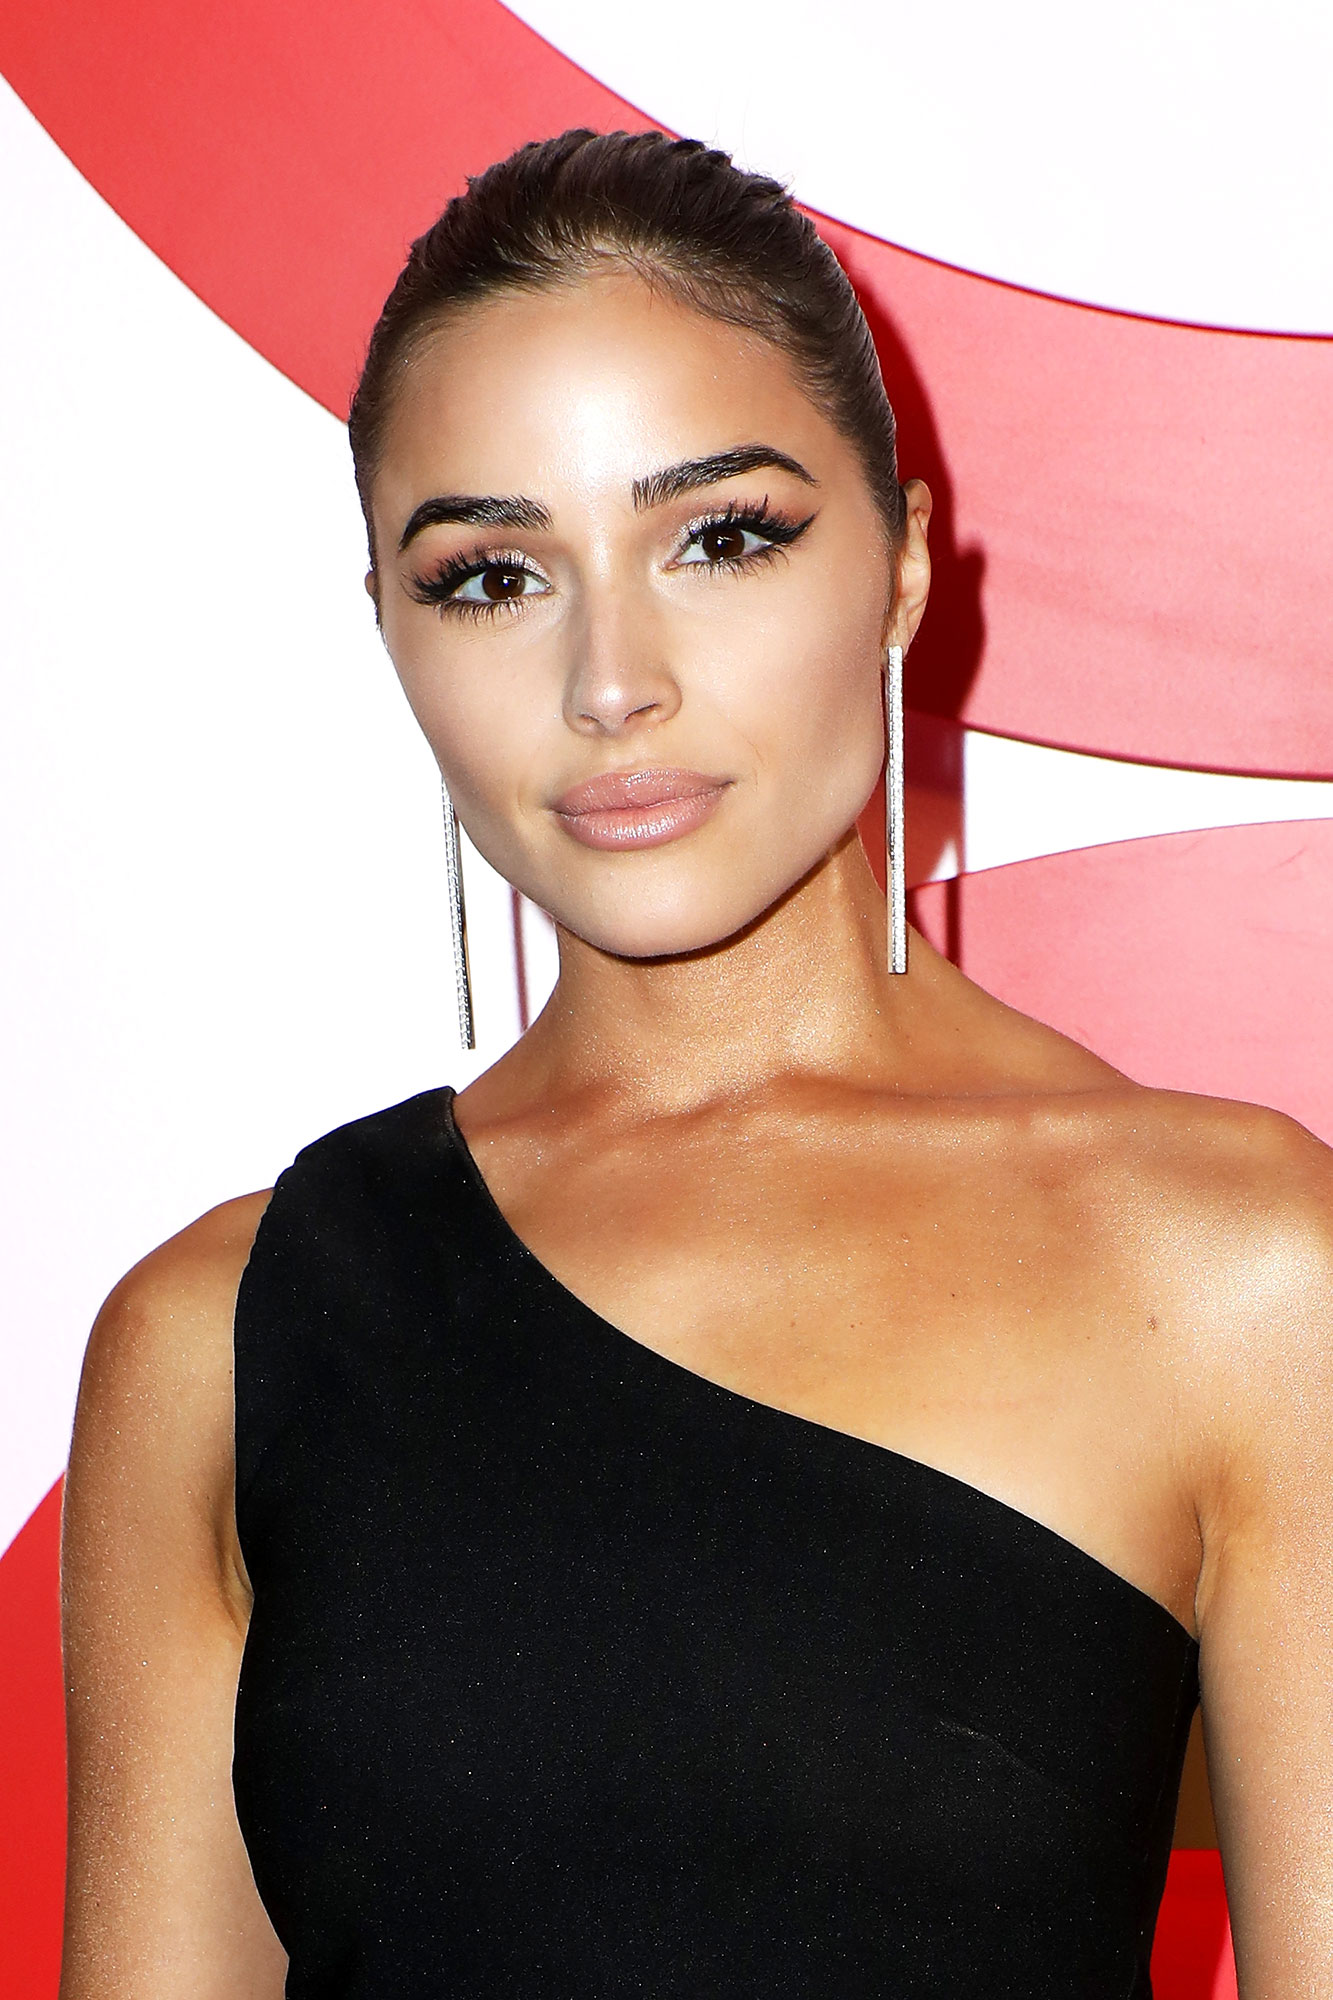 It Just Got Easier to Copy Olivia Culpo¹s Fluttery Lashes - Model and actress Olivia Culpo attends Revolve's second annual #REVOLVEawards at Palms Casino Resort on November 9, 2018 in Las Vegas, Nevada.